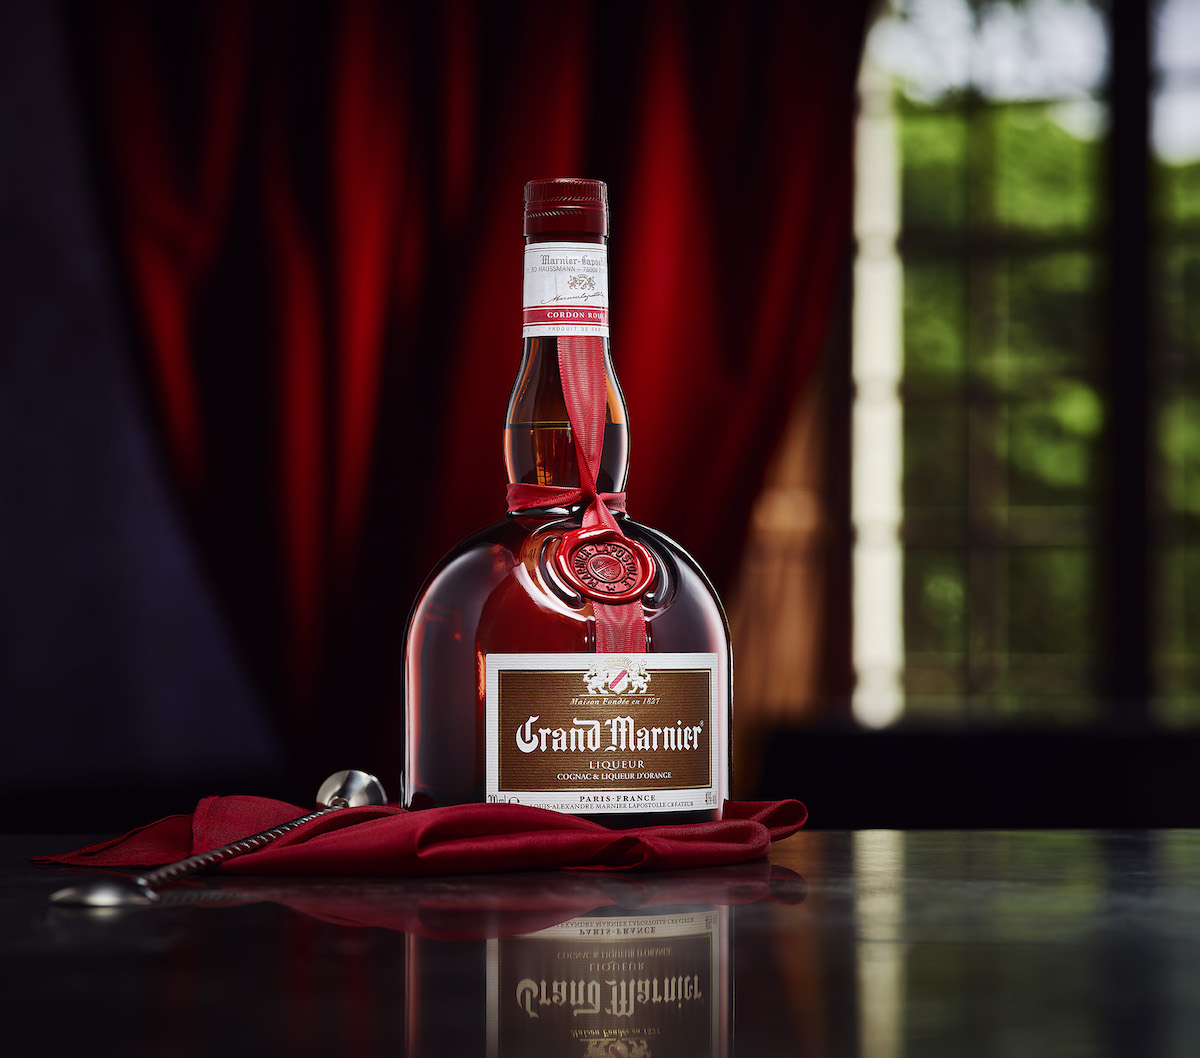 #FavouriteThings Holiday Gift Suggestions – Grand Marnier Cordon Rouge